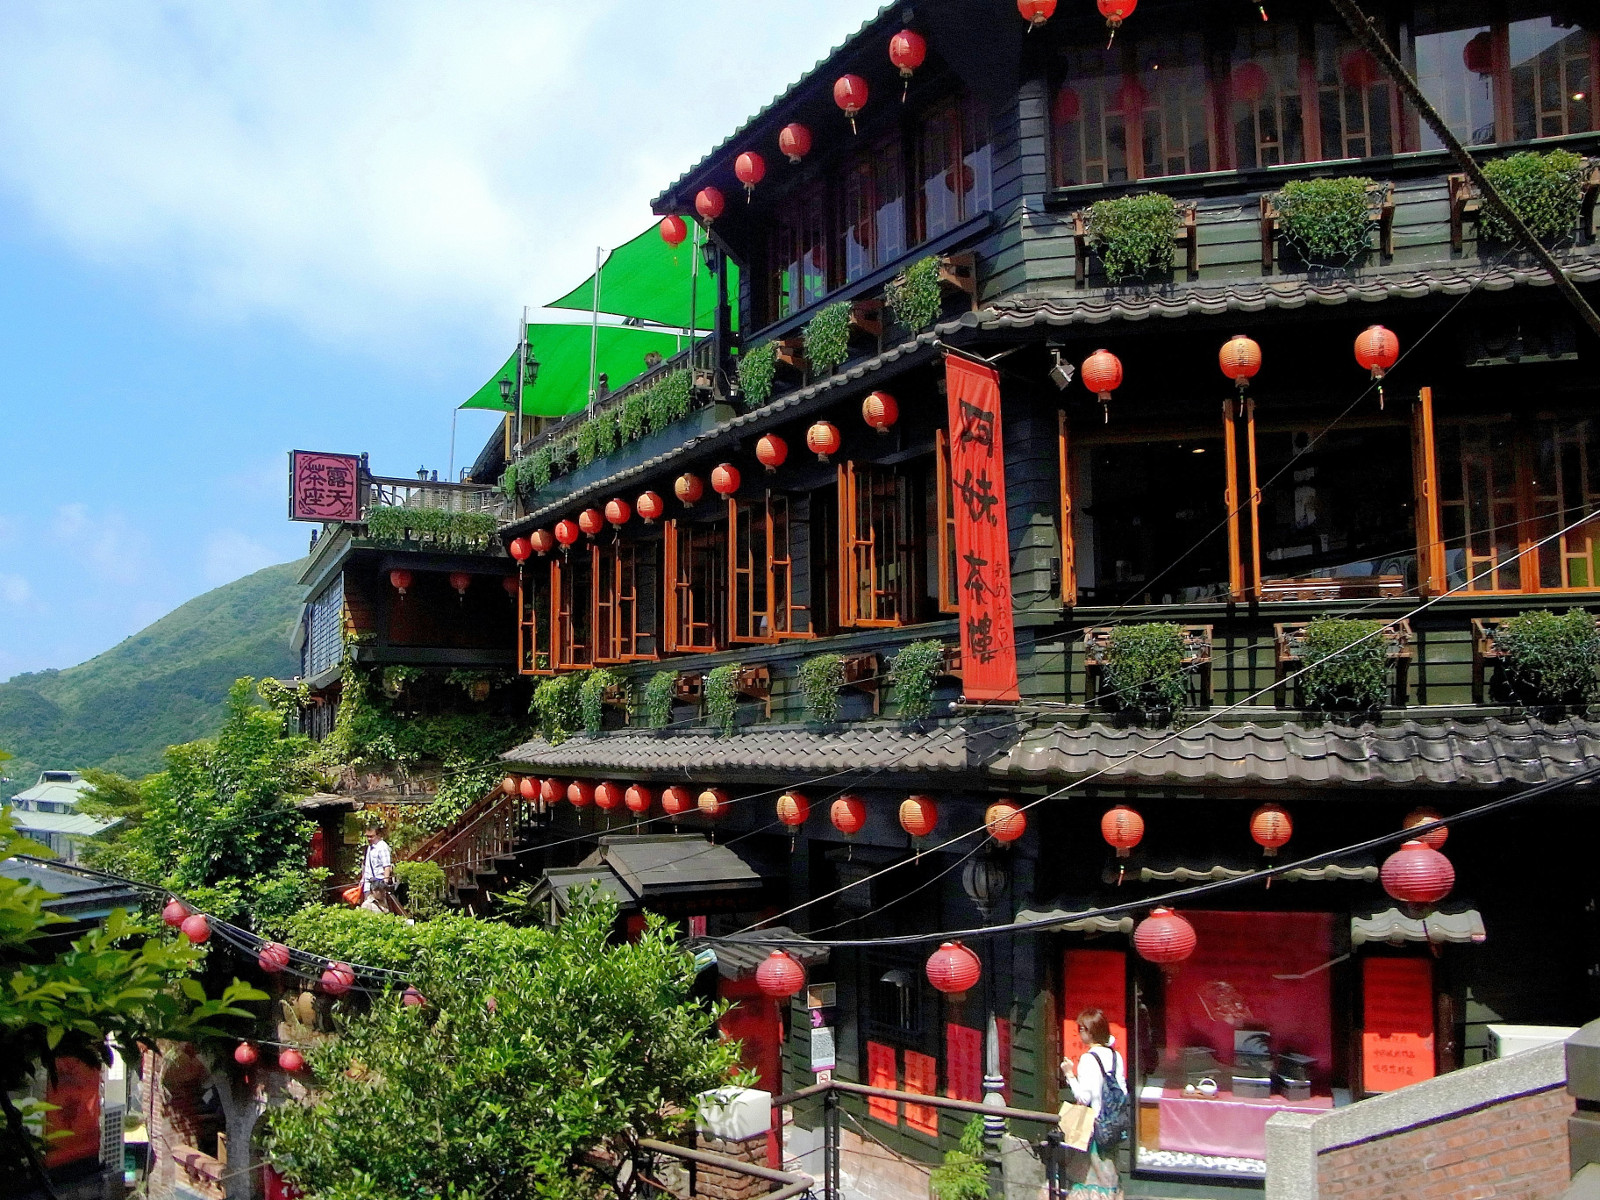 Yehliu, Jiufen, Shifen 1 Day Tour